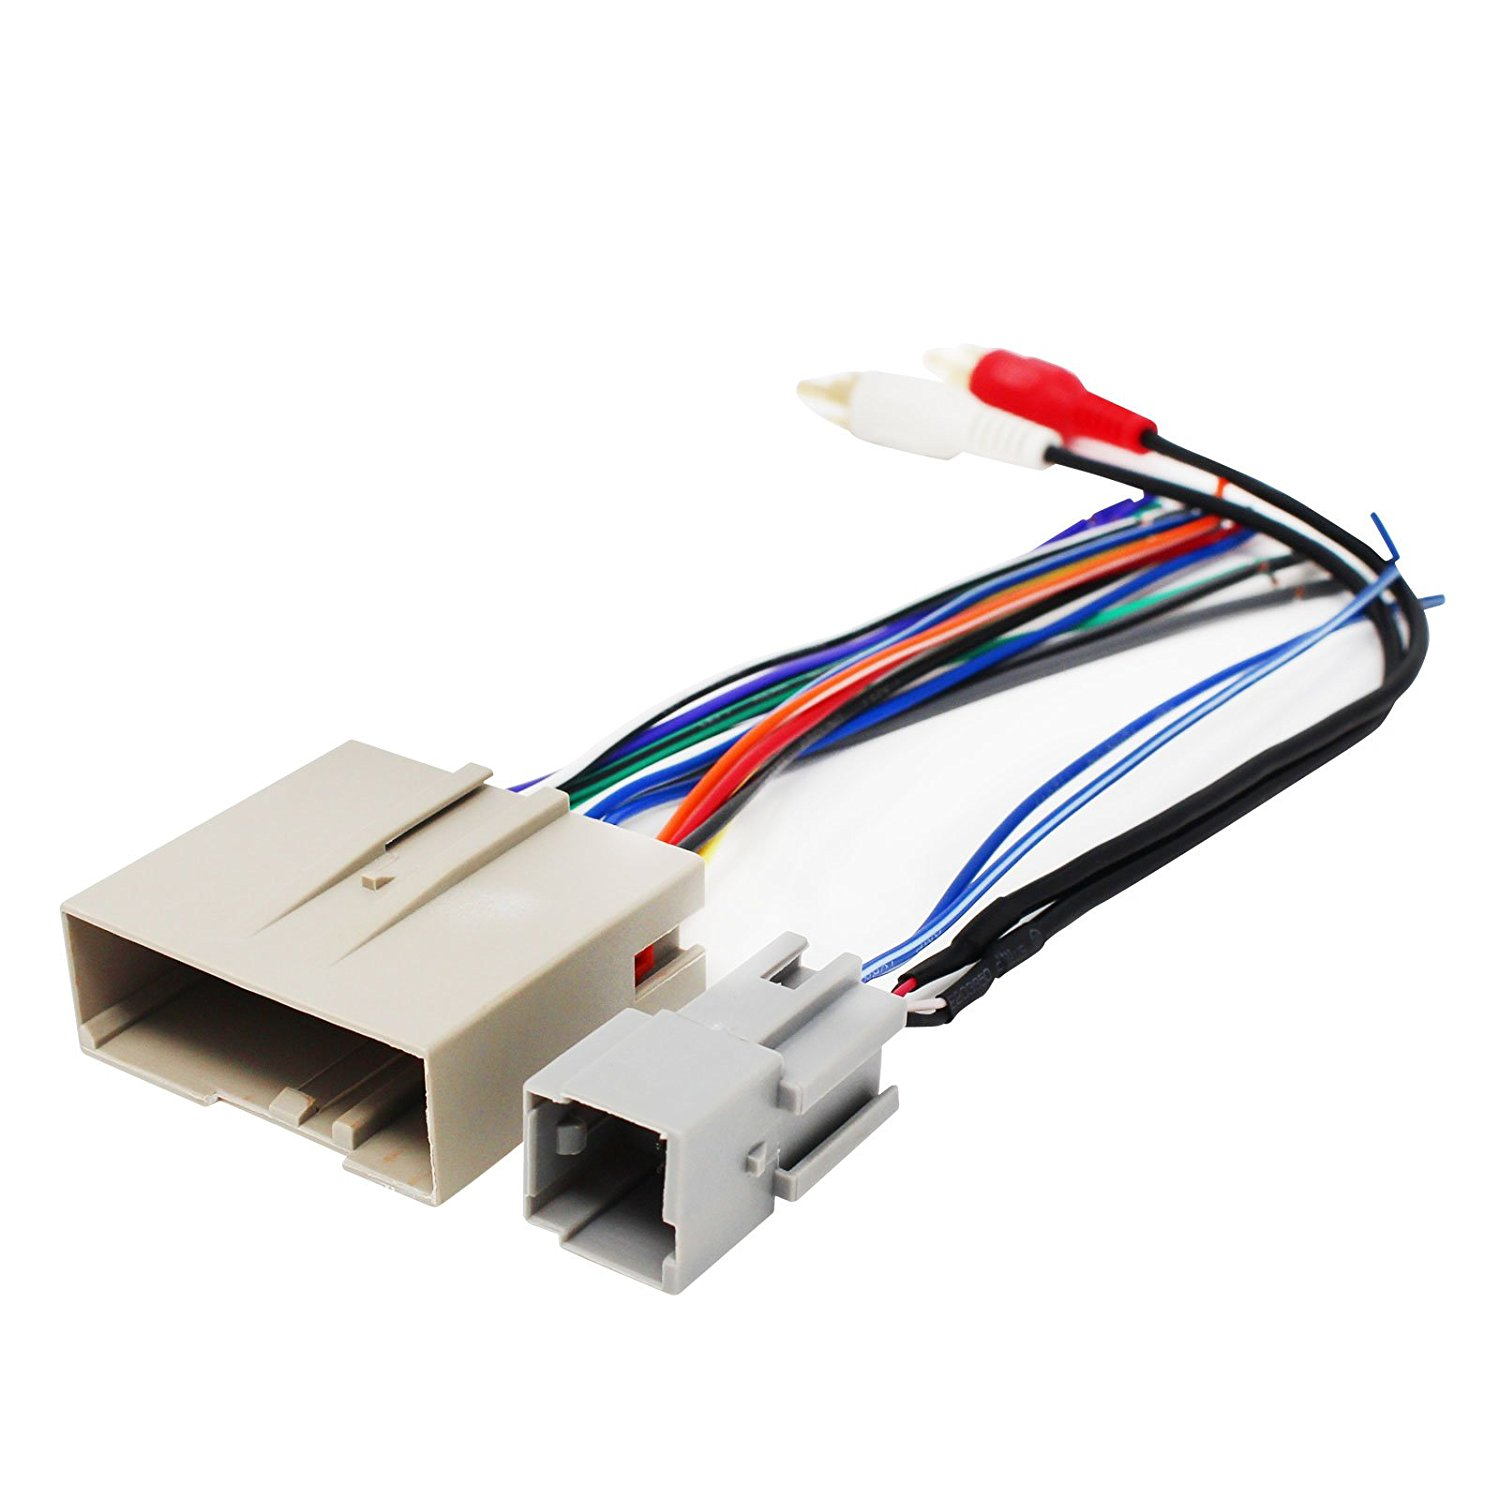 hight resolution of get quotations replacement radio wiring harness for 2006 ford crown victoria police interceptor sedan 4 door 4 6